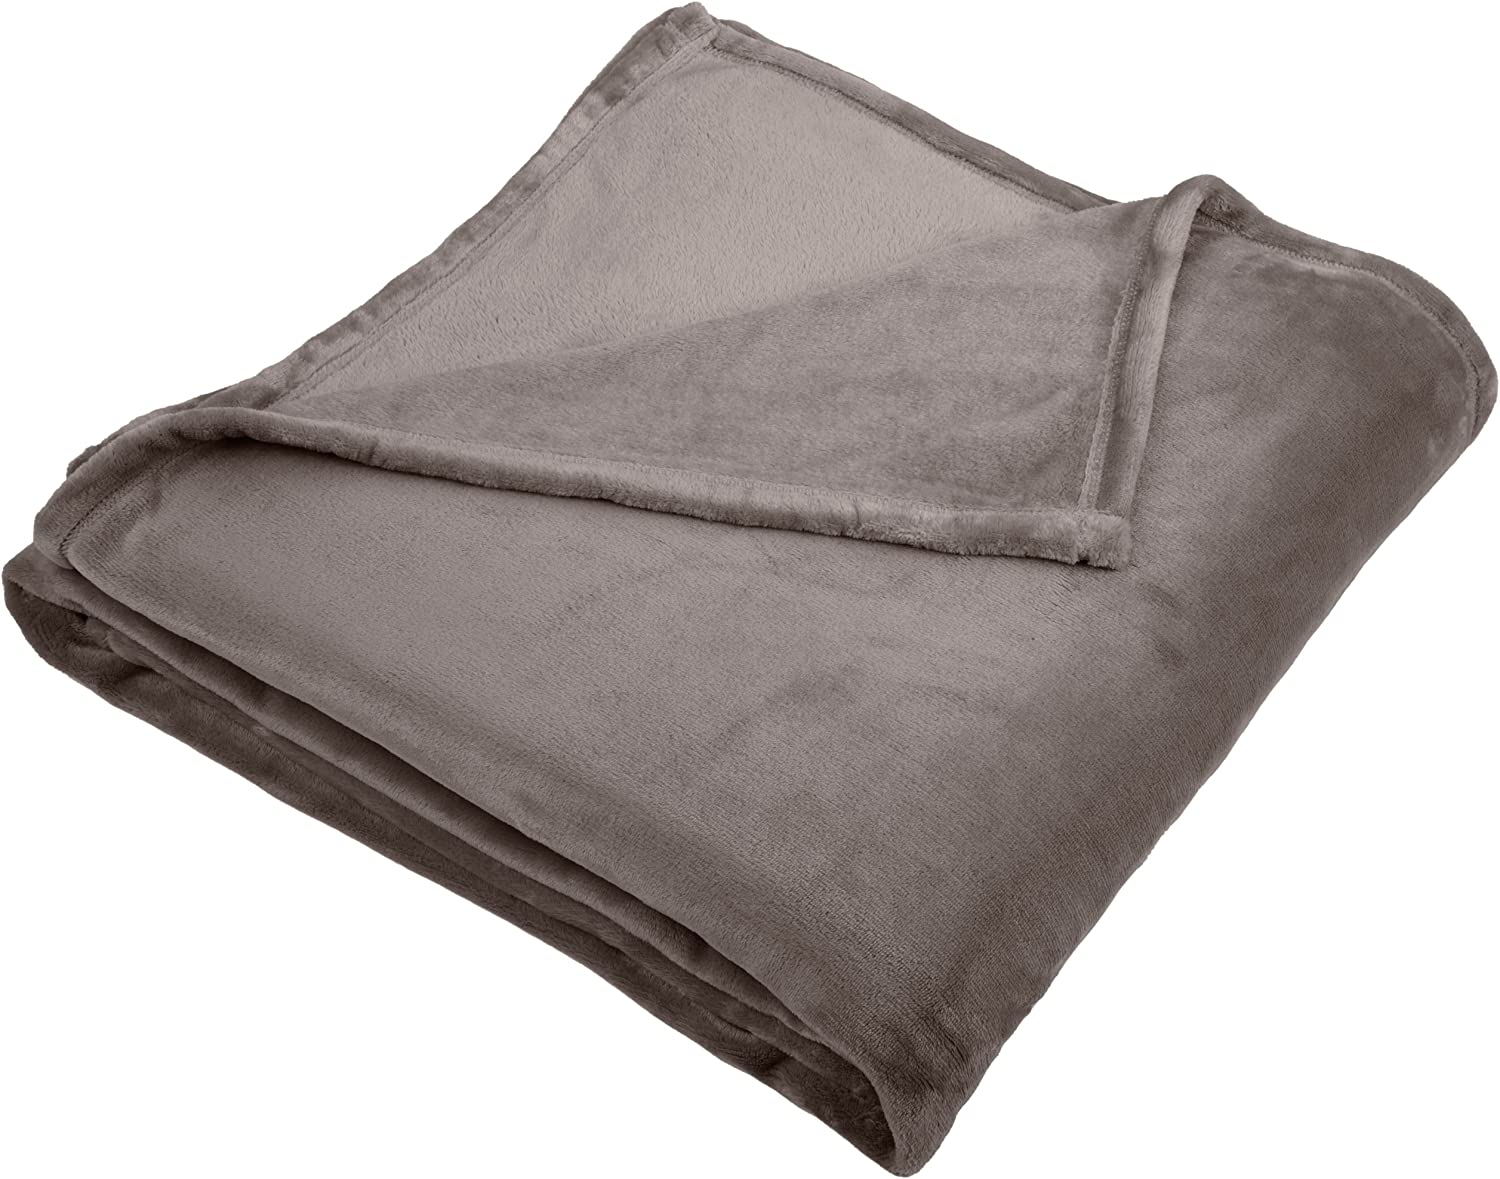 Pinzon Velvet Plush Blanket - Twin, Grey